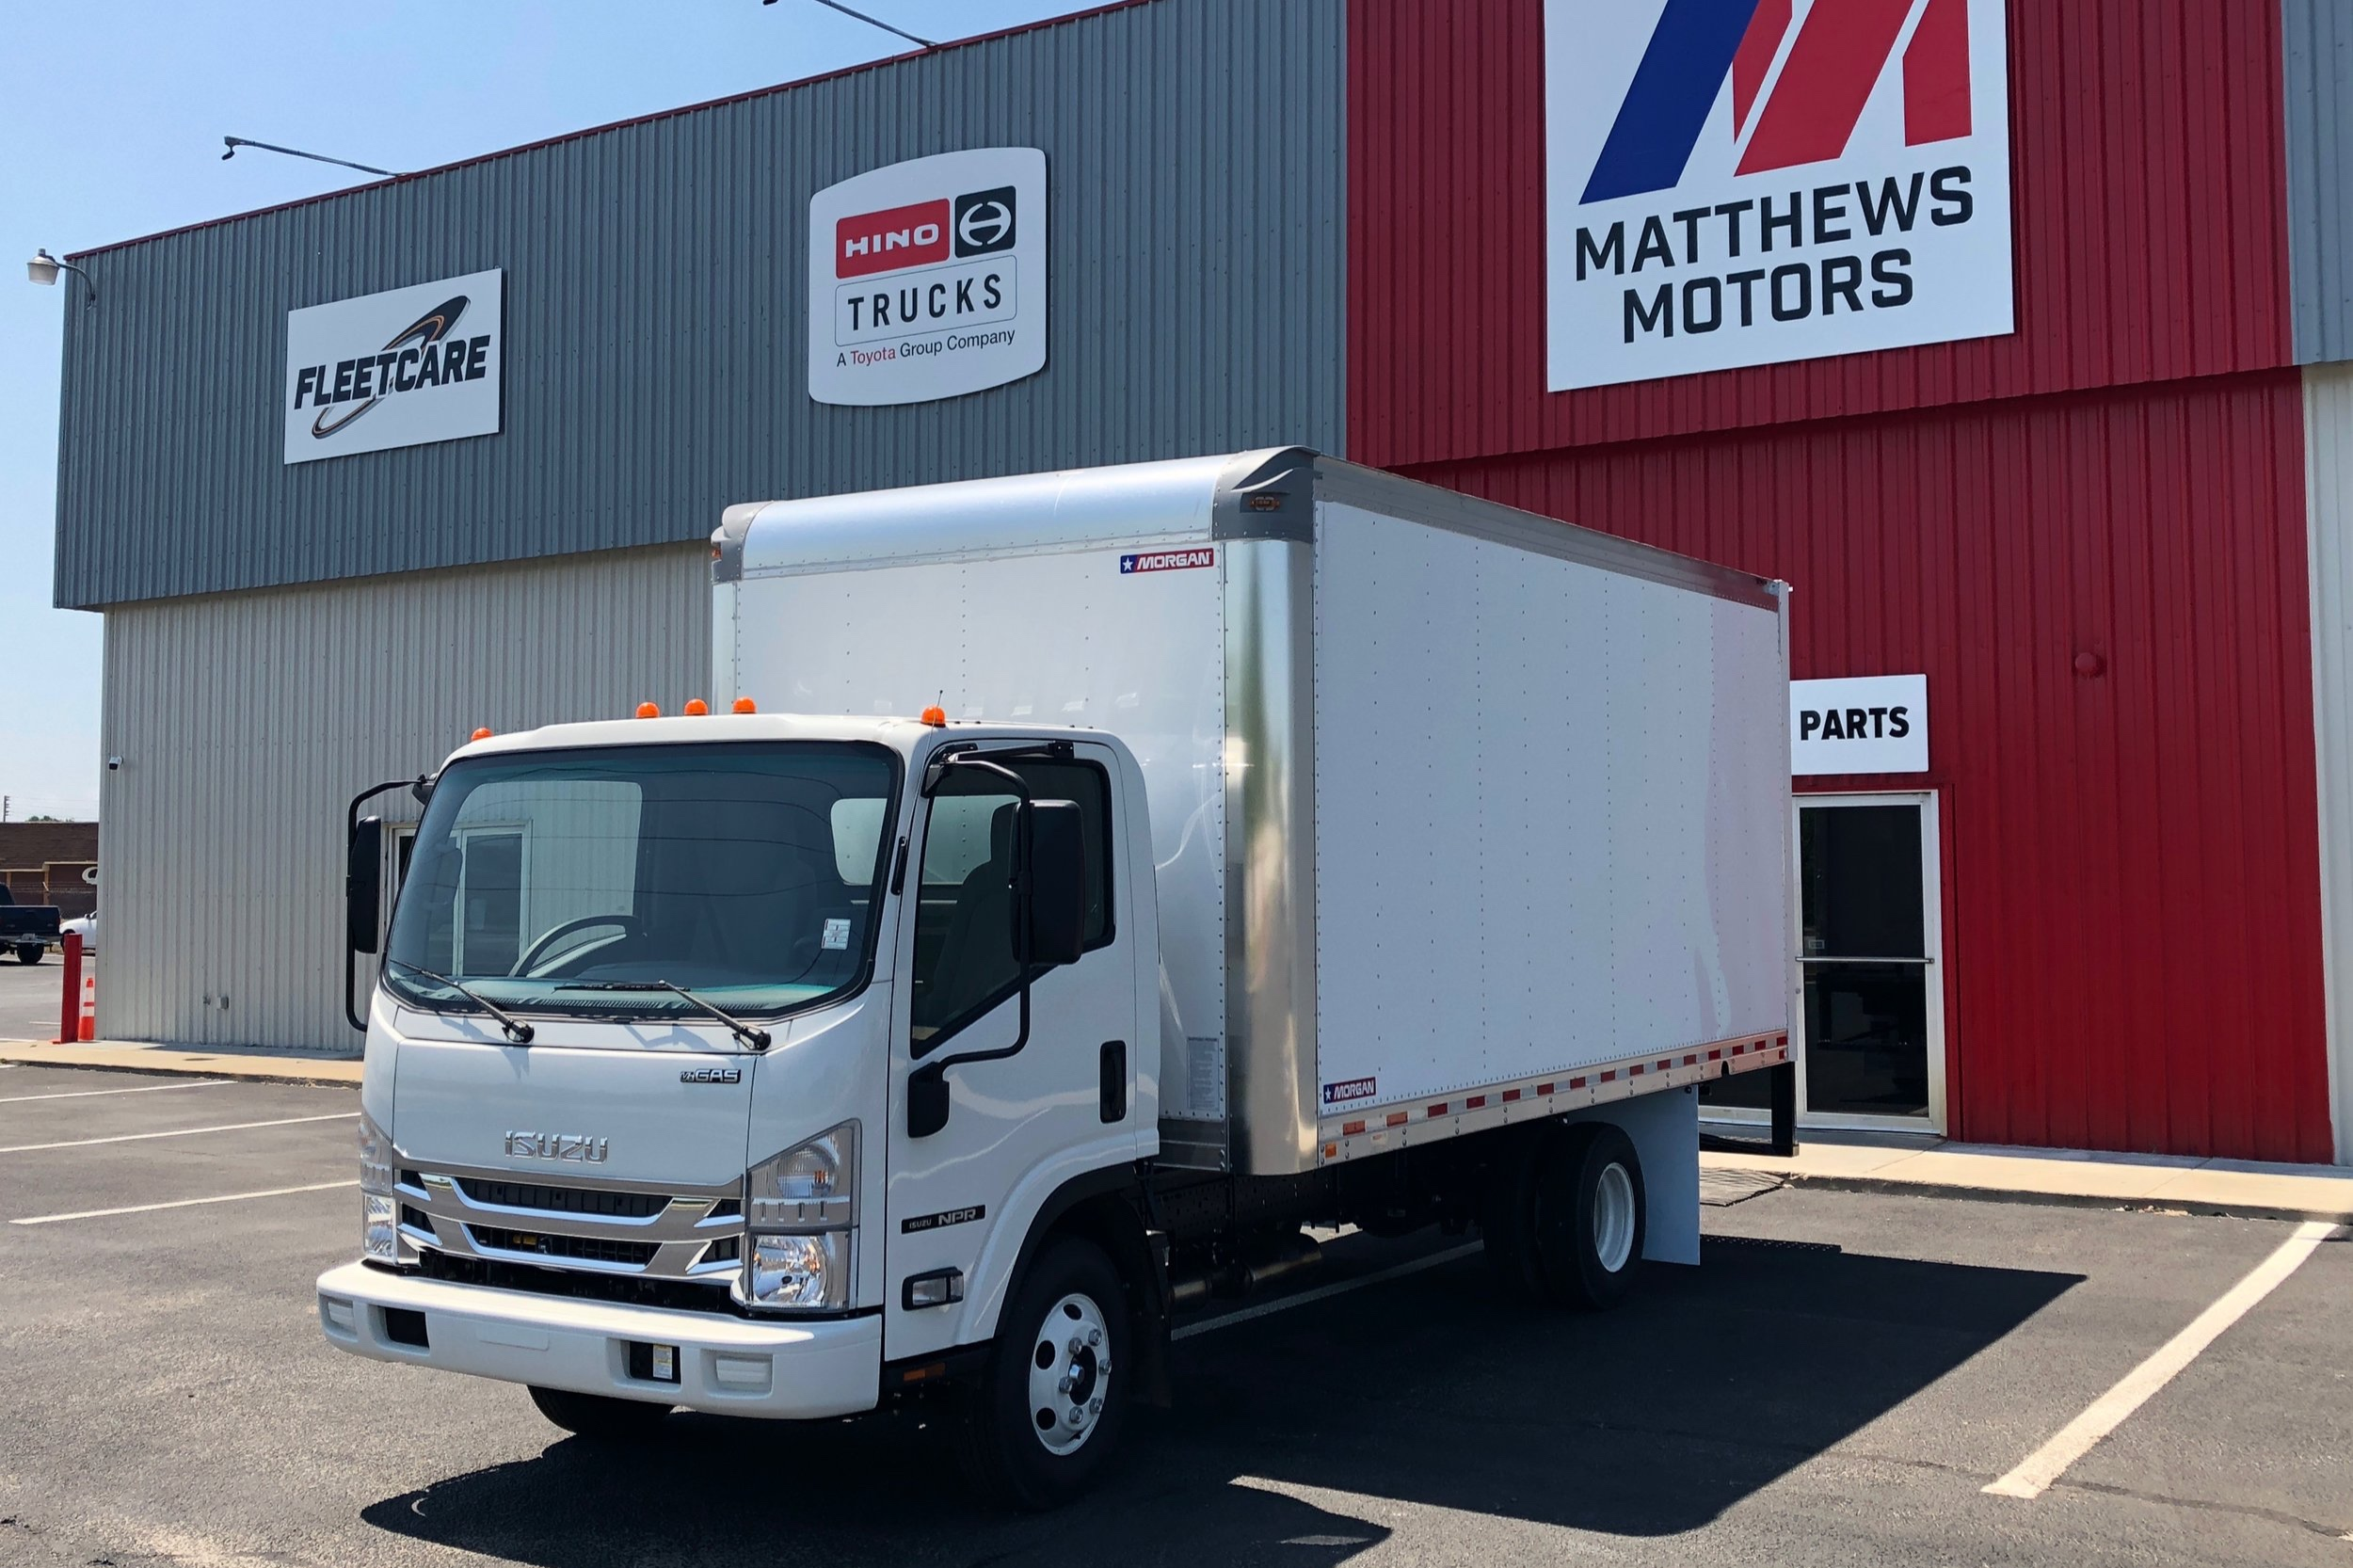 2019 Isuzu NPR Gas with 16' Box - Stock No: N/A (Order Only)Class: Class 4 (GVW 14001 - 16000)Category: Box TruckCab Type: STANDARD CABEngine Make: IsuzuEngine Size: 6.0LFuel Type: GasolineVIN: N/A (Order Only)